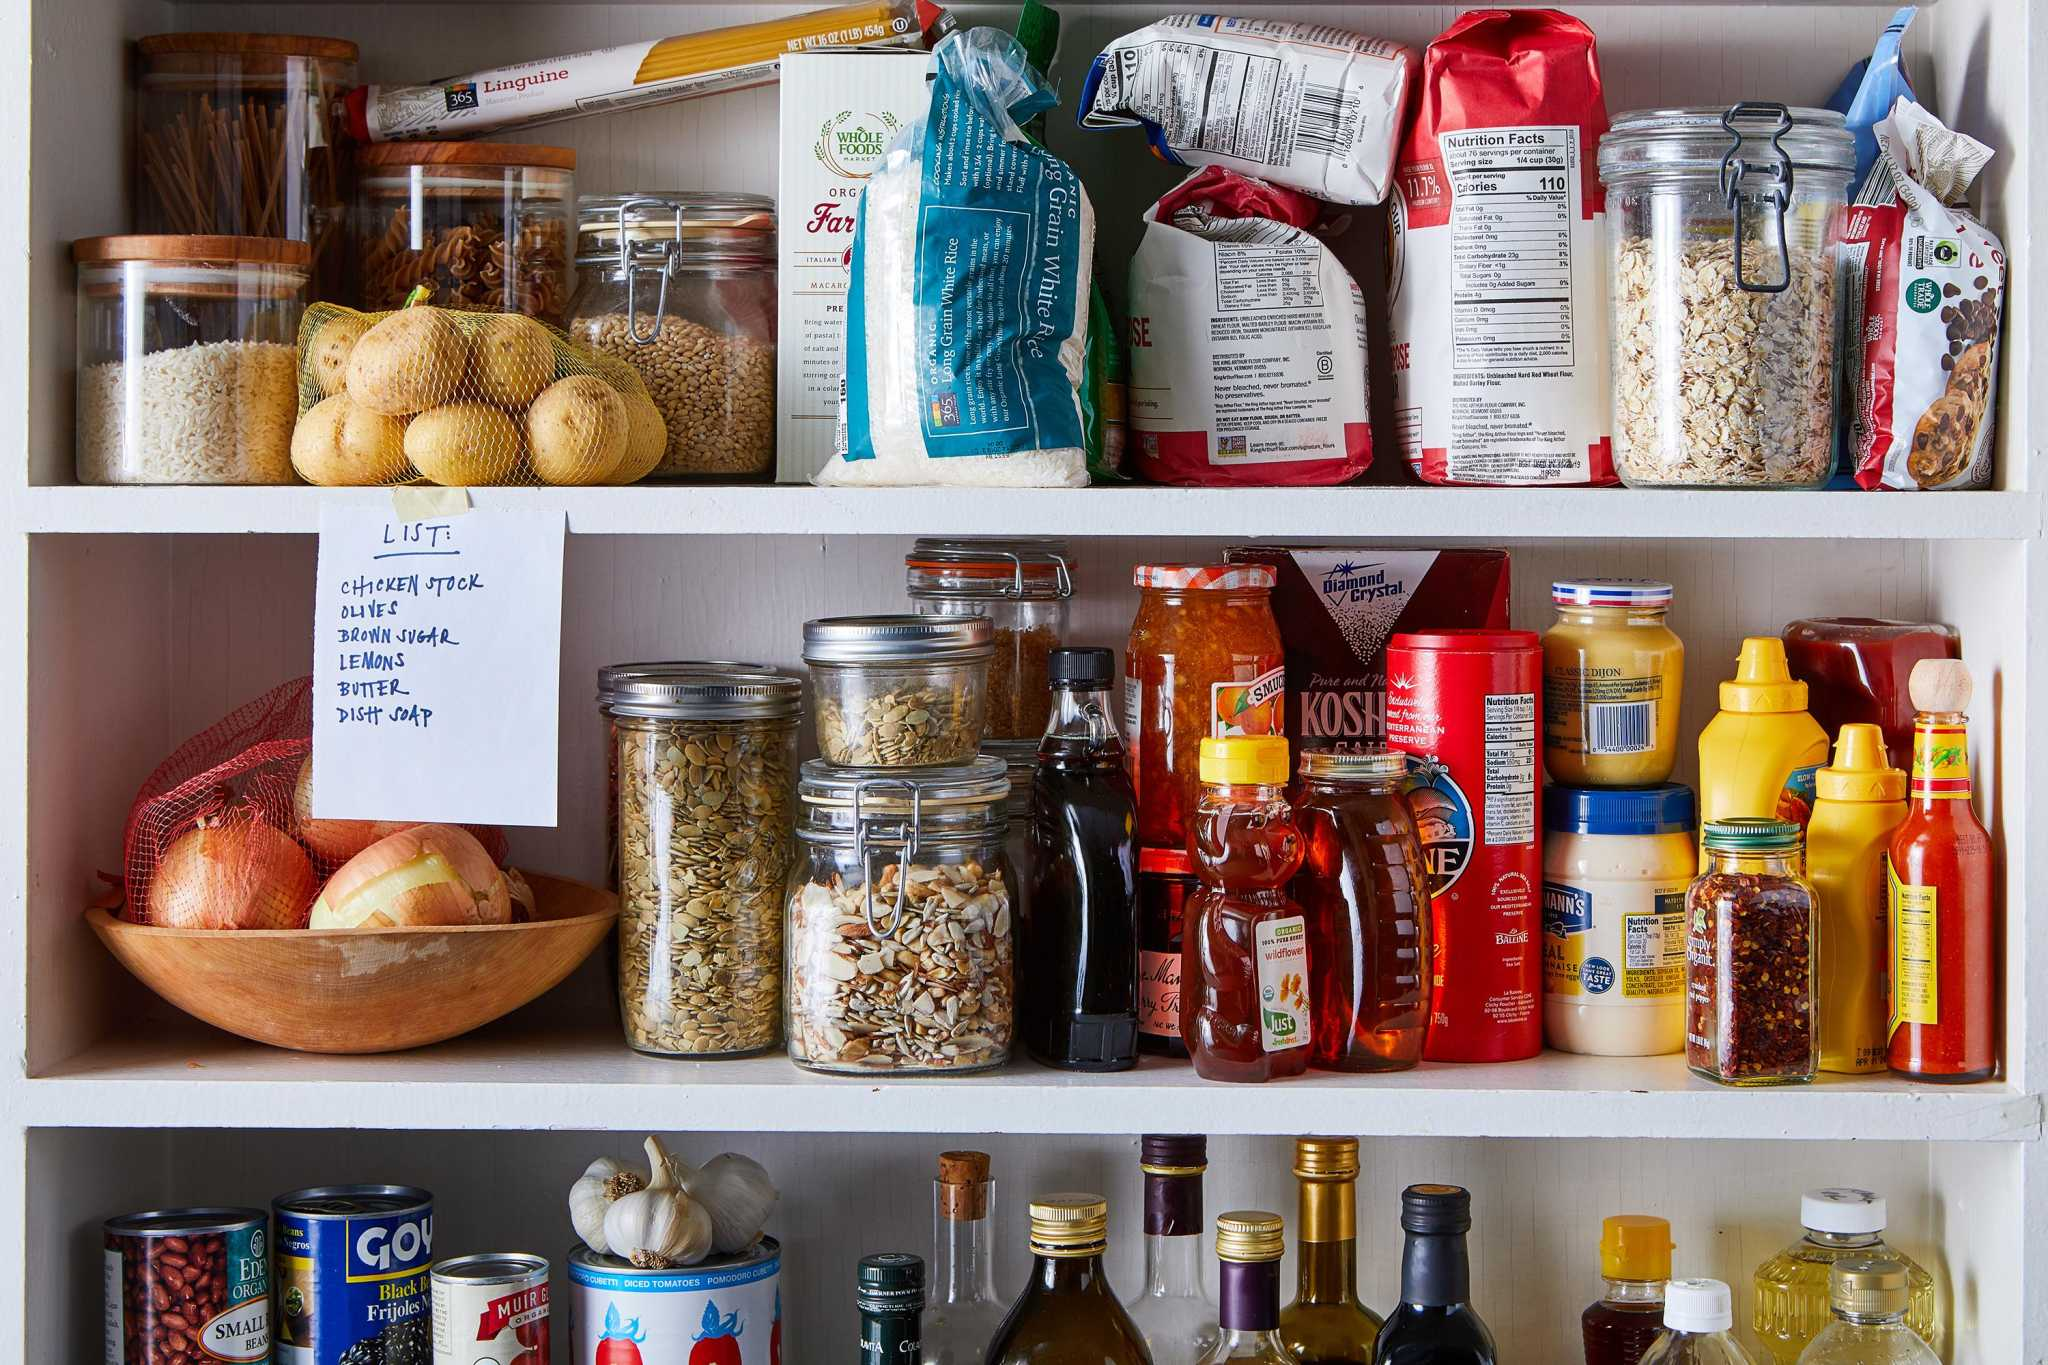 Stocking your pantry and fridge during coronavirus